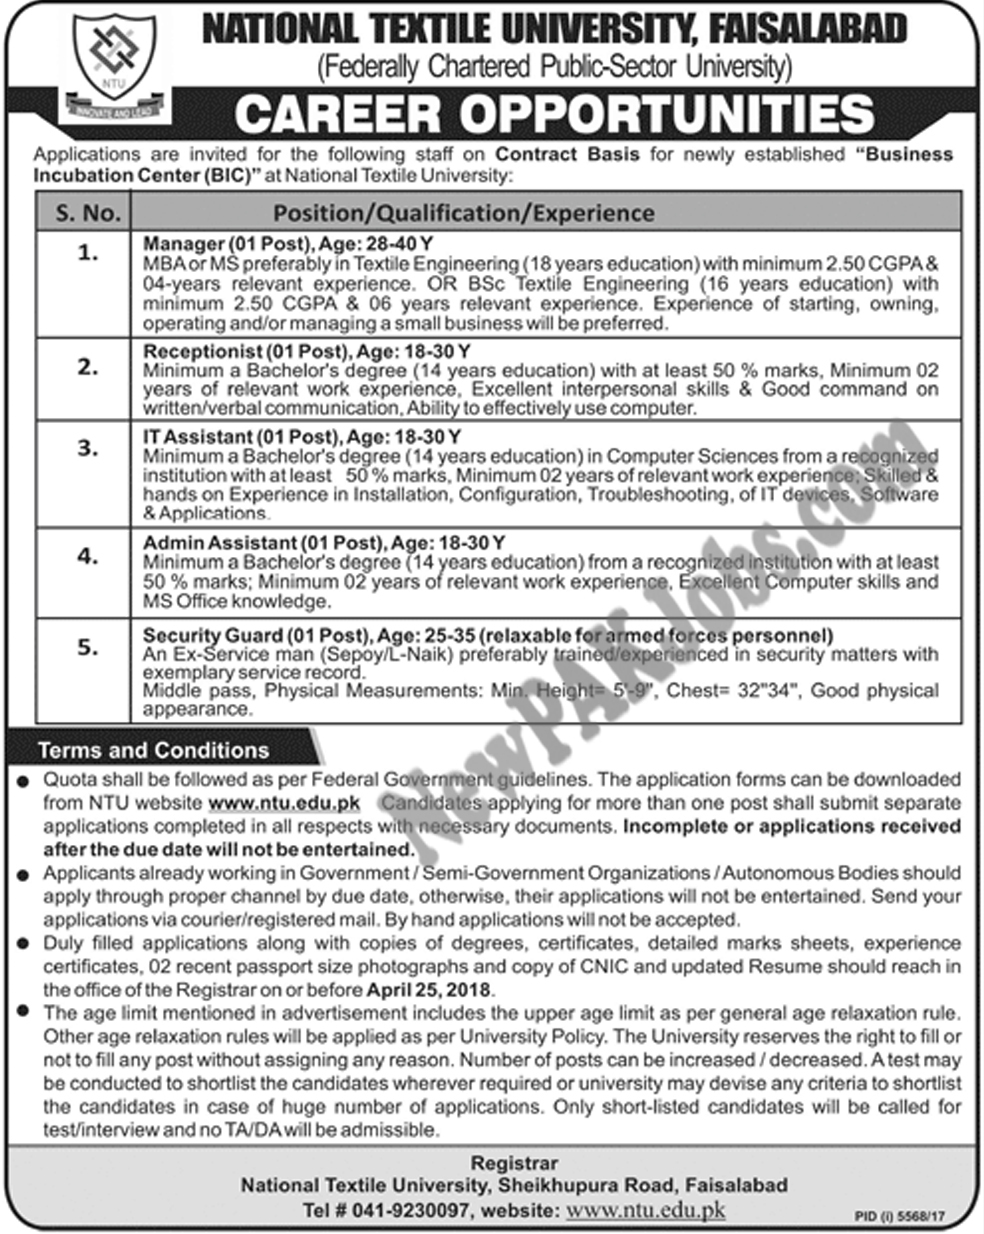 National Textile University Faisalabad jobs